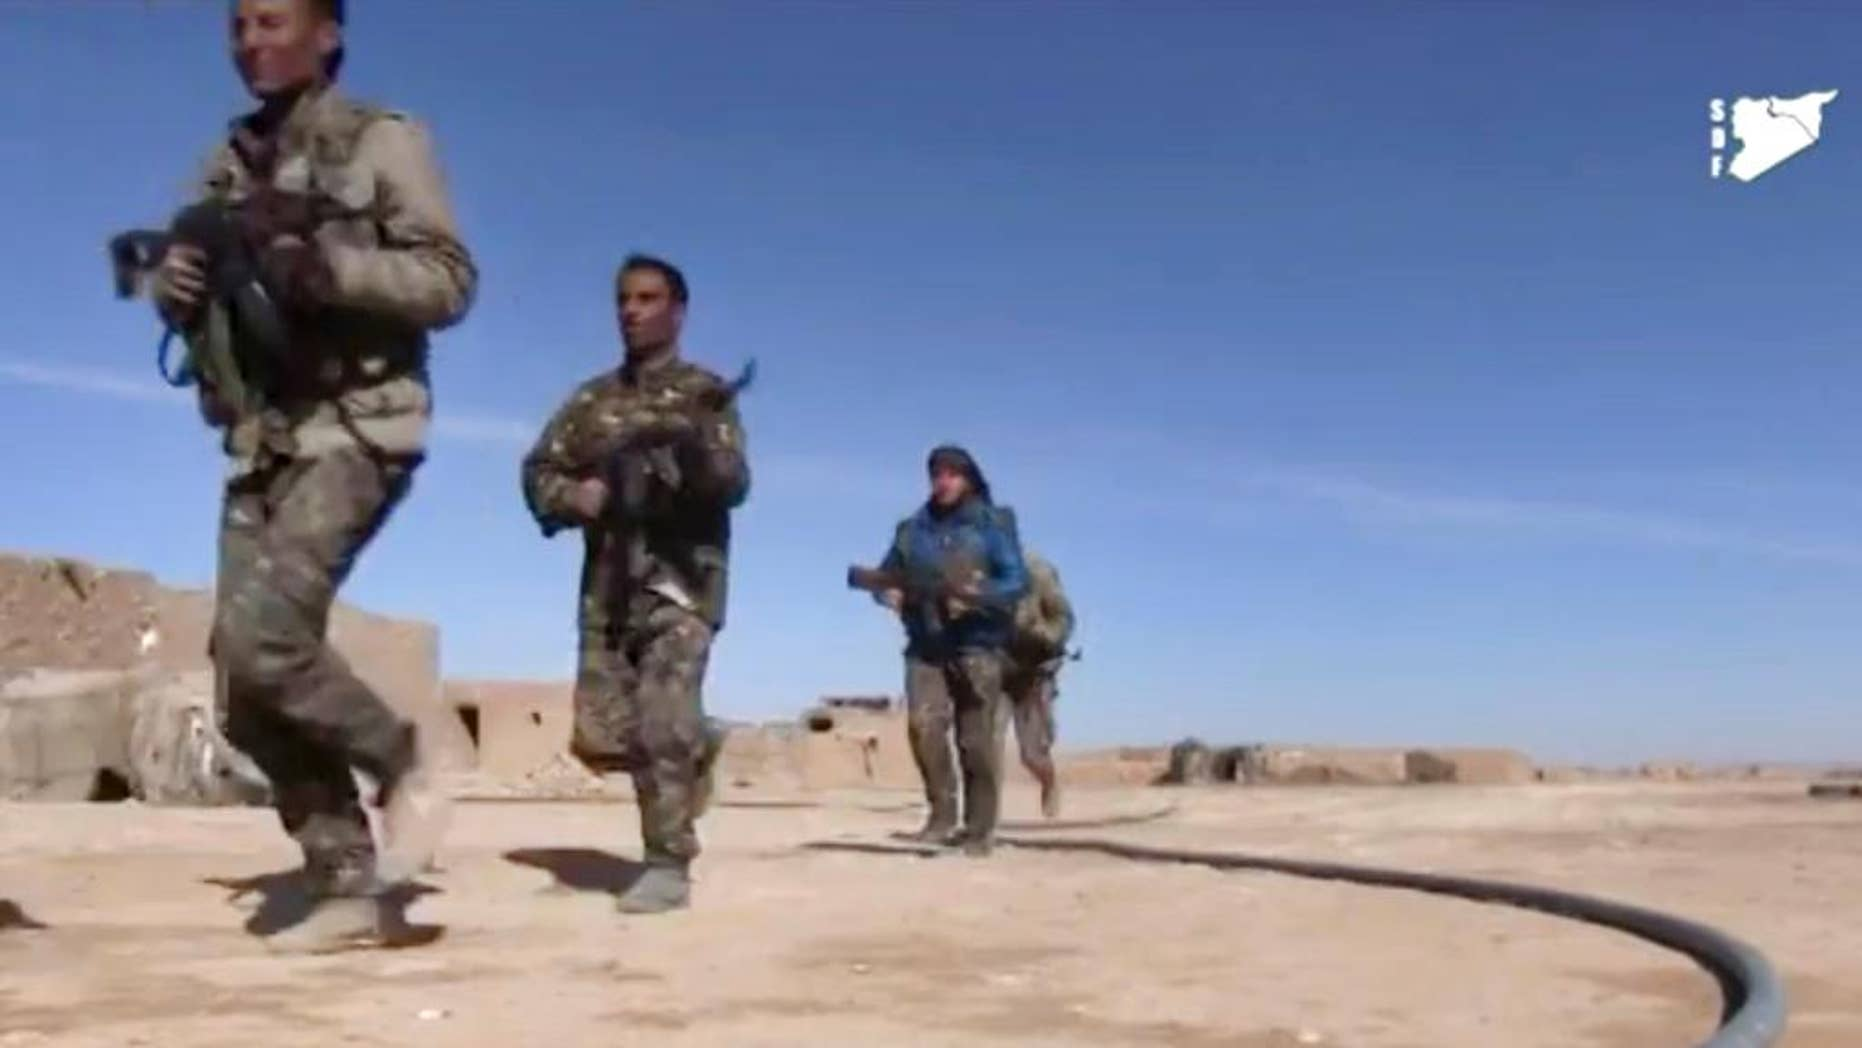 FILE - This frame grab from a video provided by the Syria Democratic Forces (SDF), shows fighters from the SDF running during fighting with Islamic State group militant, in Raqqa's eastern countryside, Syria, Monday, March 6, 2017. The main U.S.-backed force fighting the Islamic State group in Syria has enough fighters to capture the extremists' de facto capital of Raqqa north of the country at a time when U.S. troops are playing a bigger role on the ground in the battle to conquer the city, a spokeswoman for the force said Friday, March 10, 2017.  (Syria Democratic Forces, via AP)